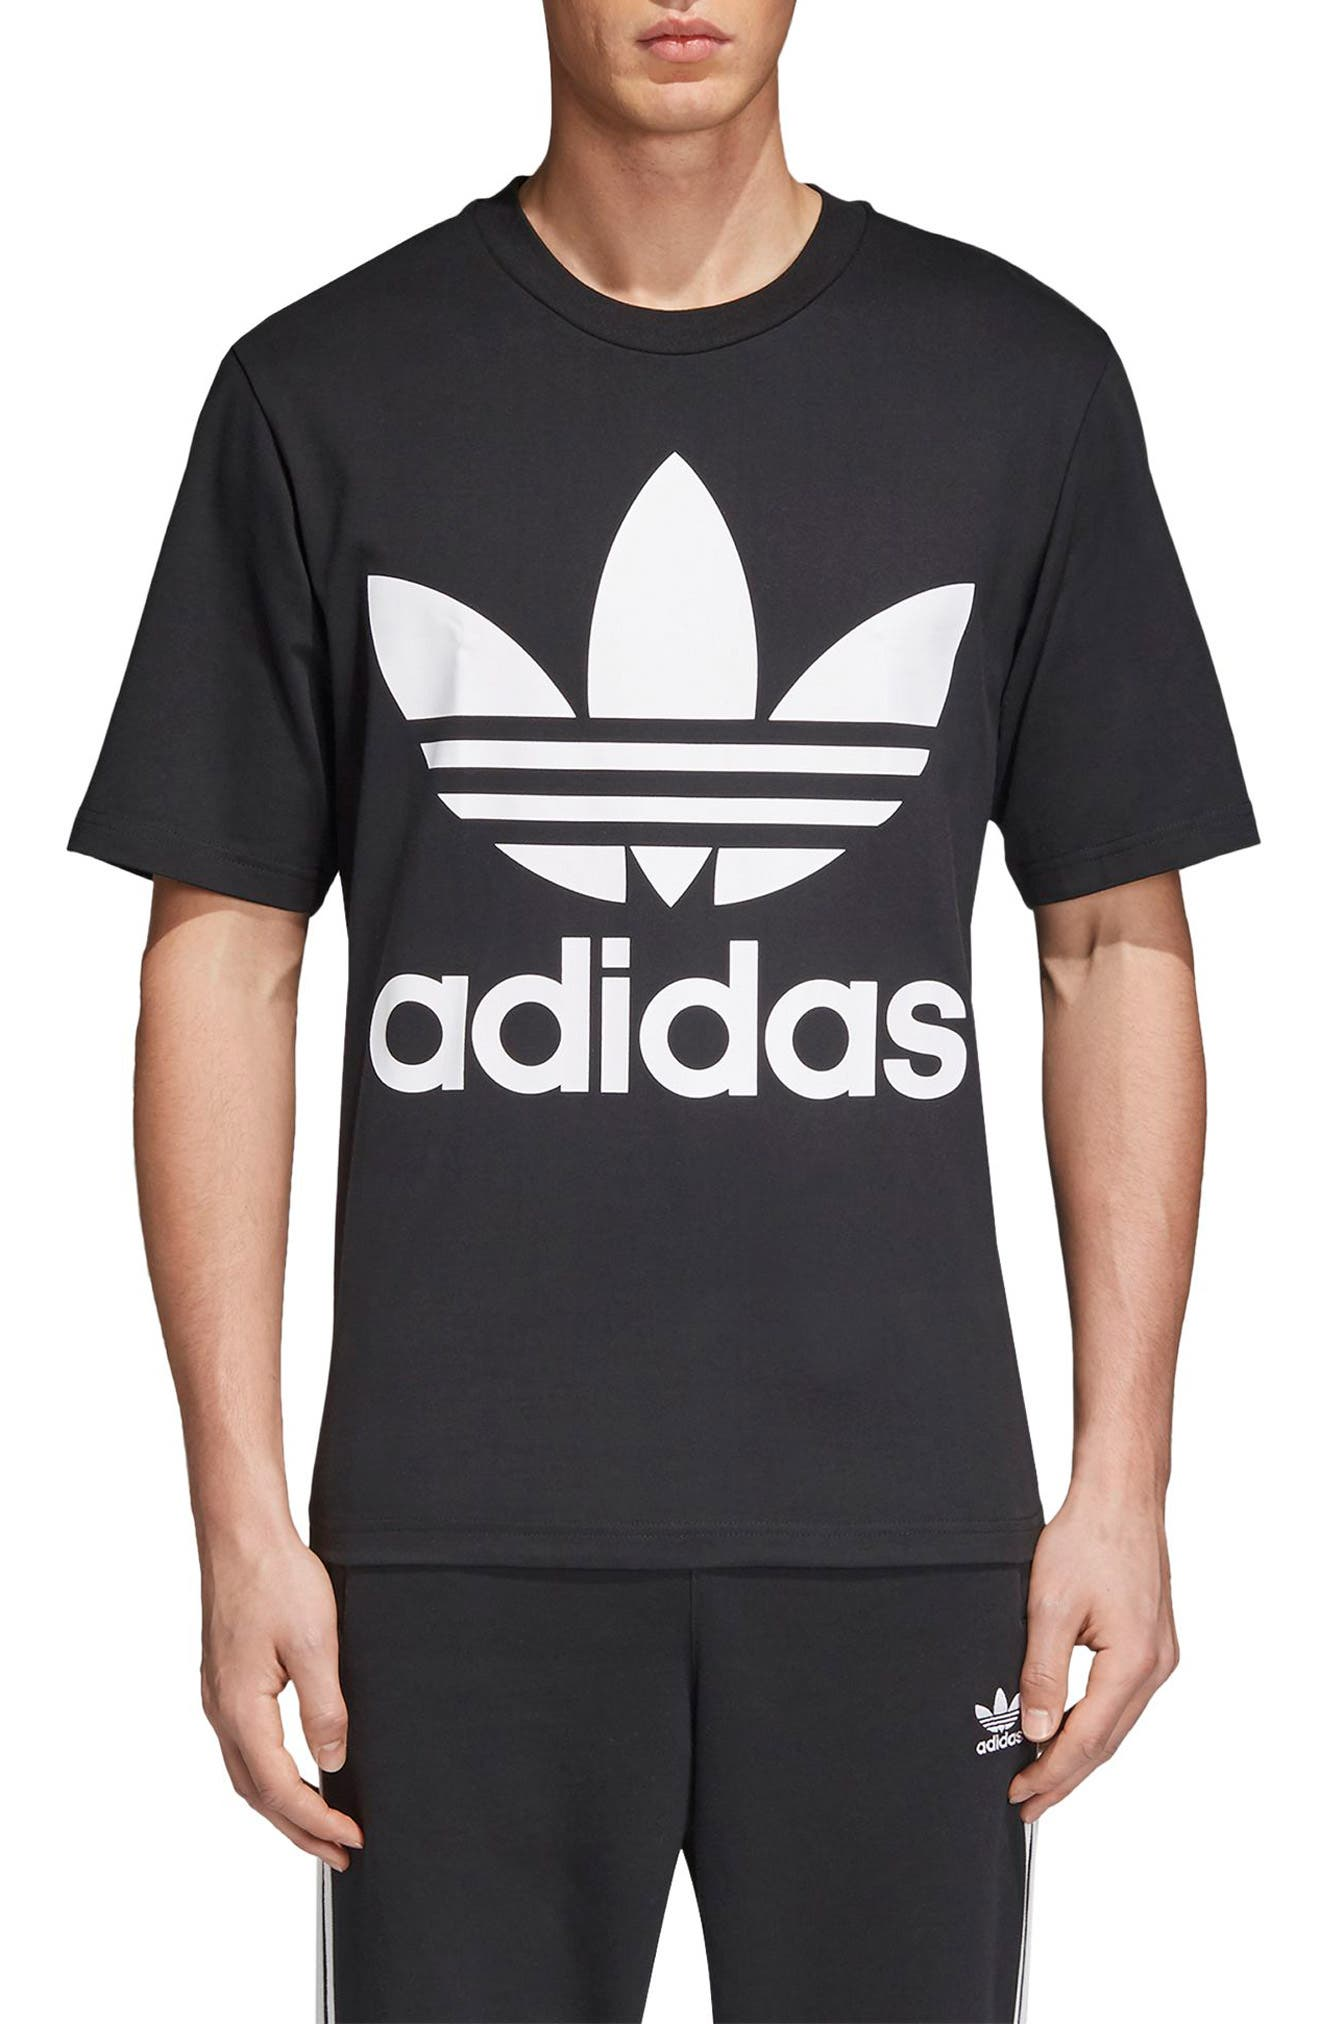 Adidas Originals Oversize Logo T-Shirt, Black